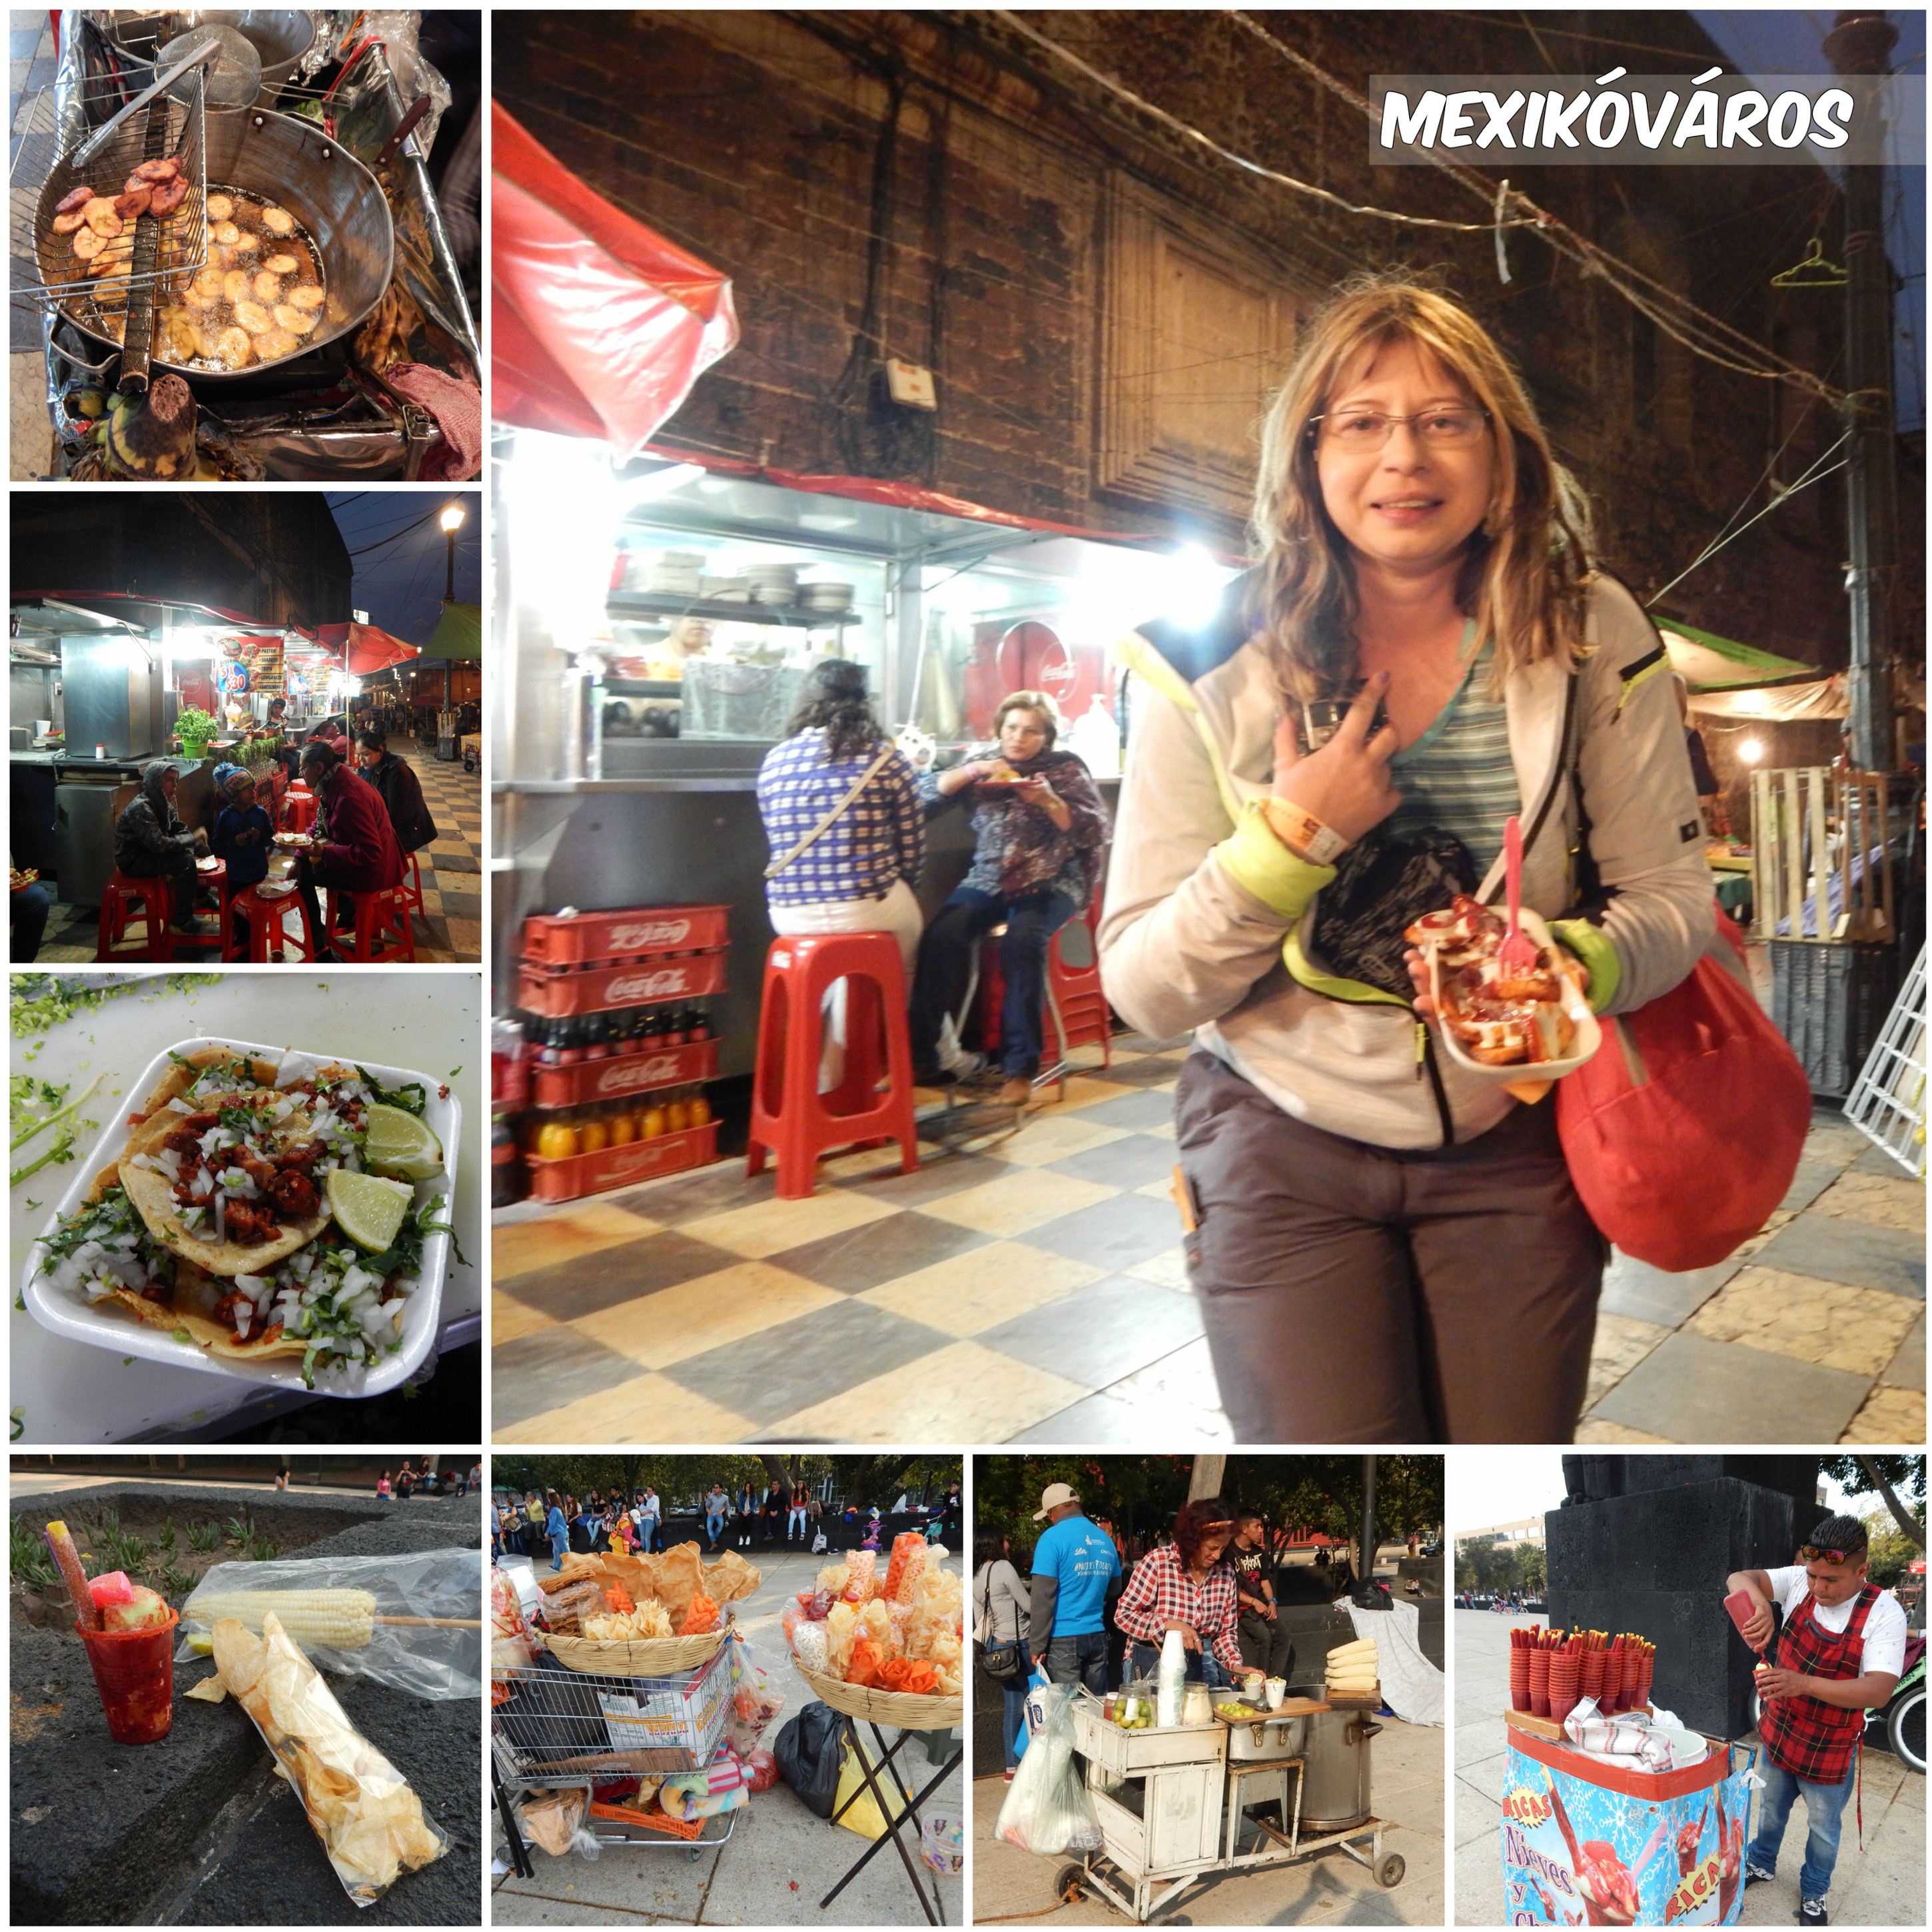 MexicoFoodCollage-small